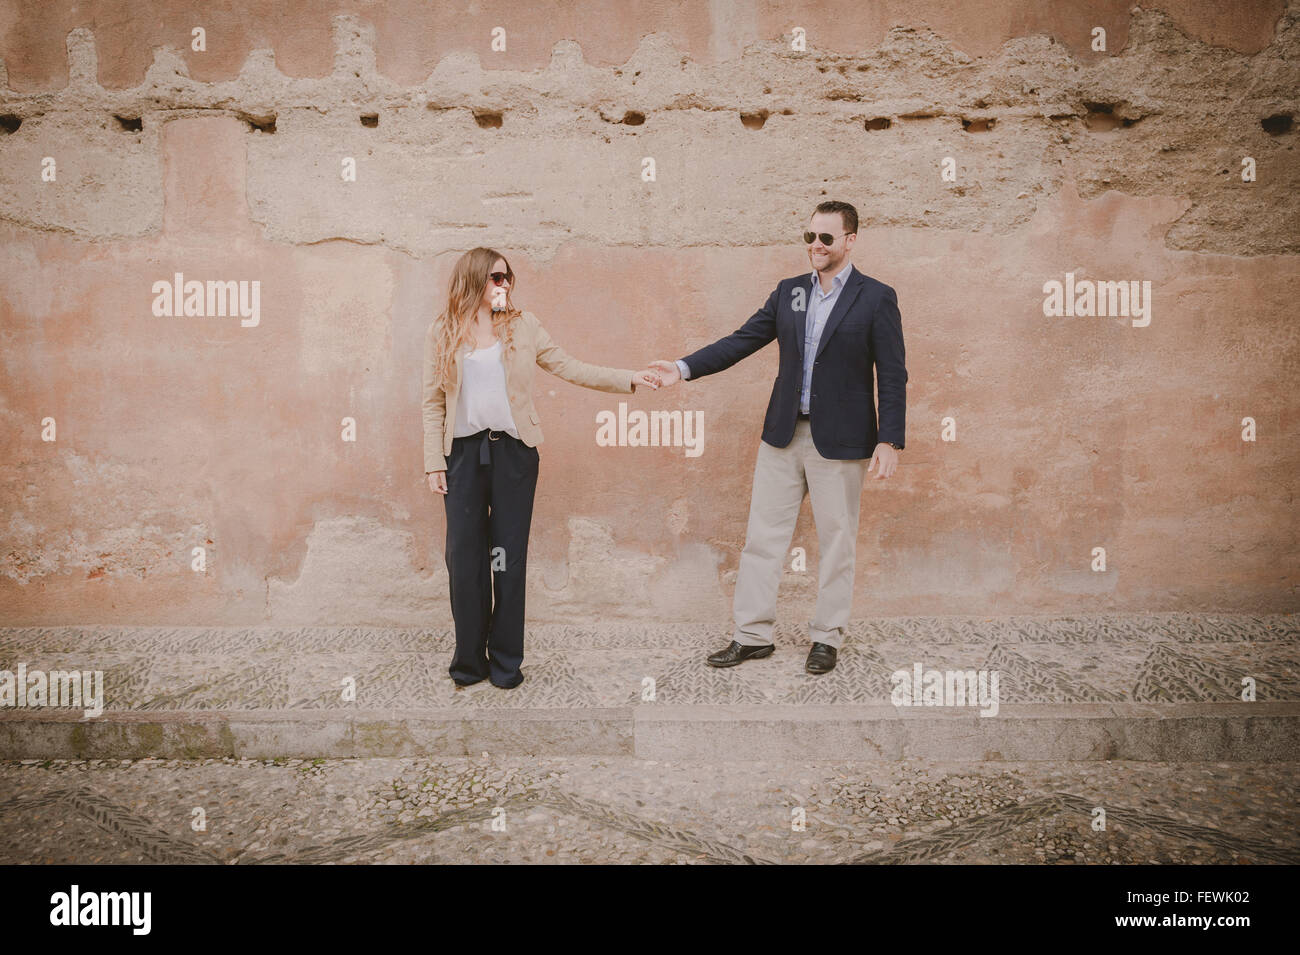 Couple Holding Hands Photo Stock